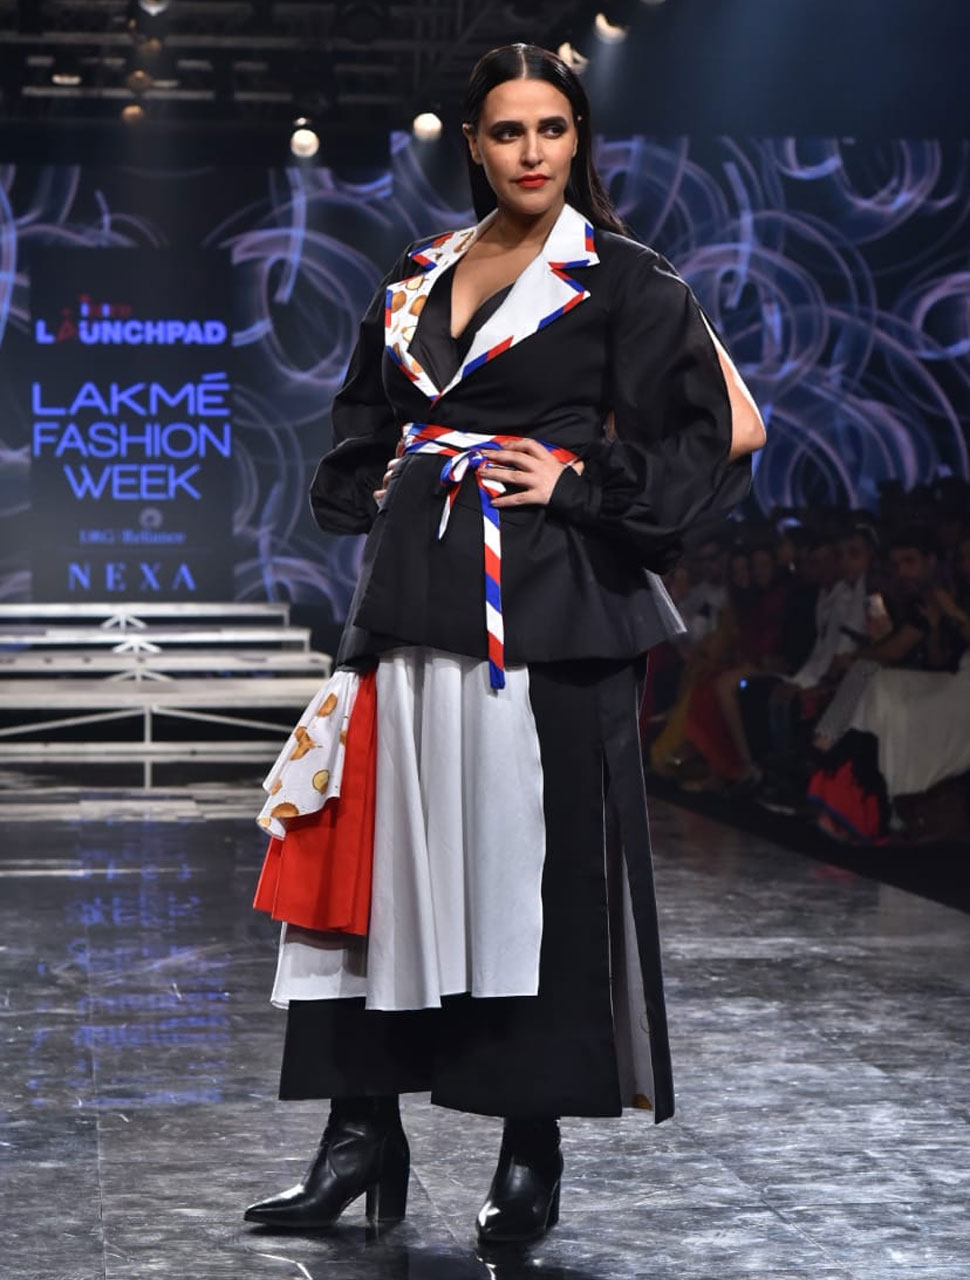 neha dhupia lakme fashion week